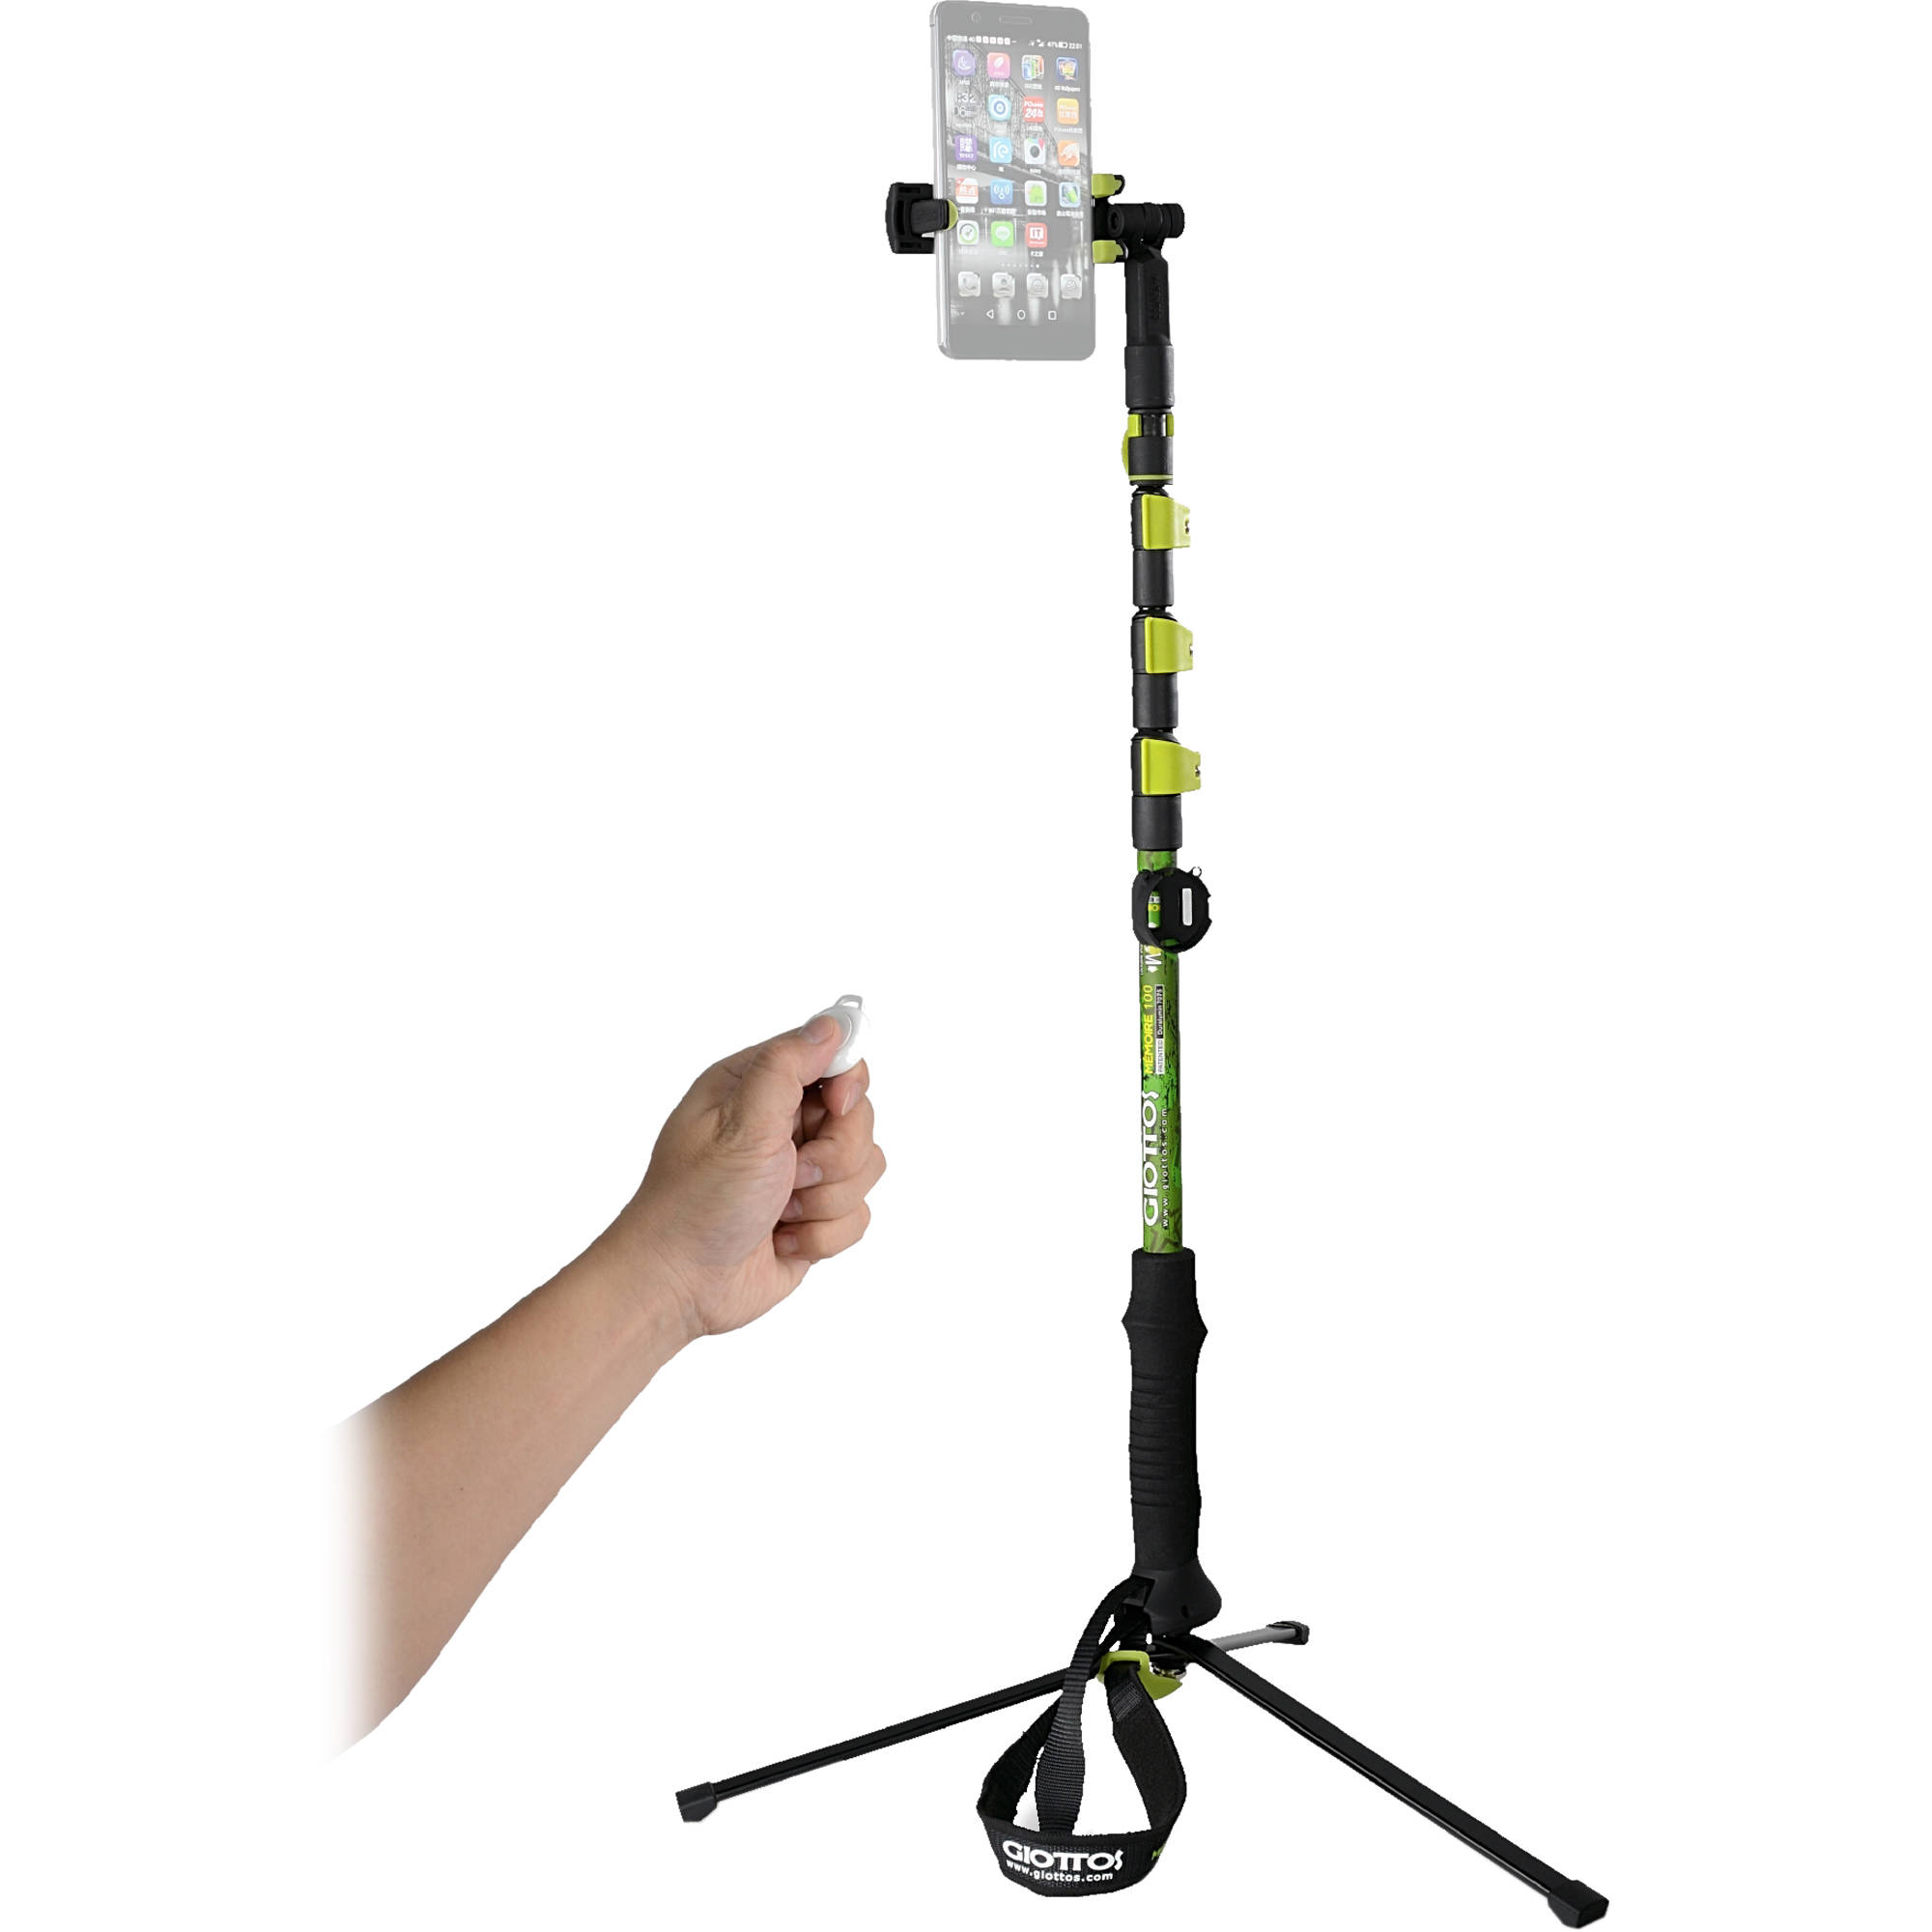 giottos memoire 100 trekking pole tripod selfie stick mm100 b h. Black Bedroom Furniture Sets. Home Design Ideas